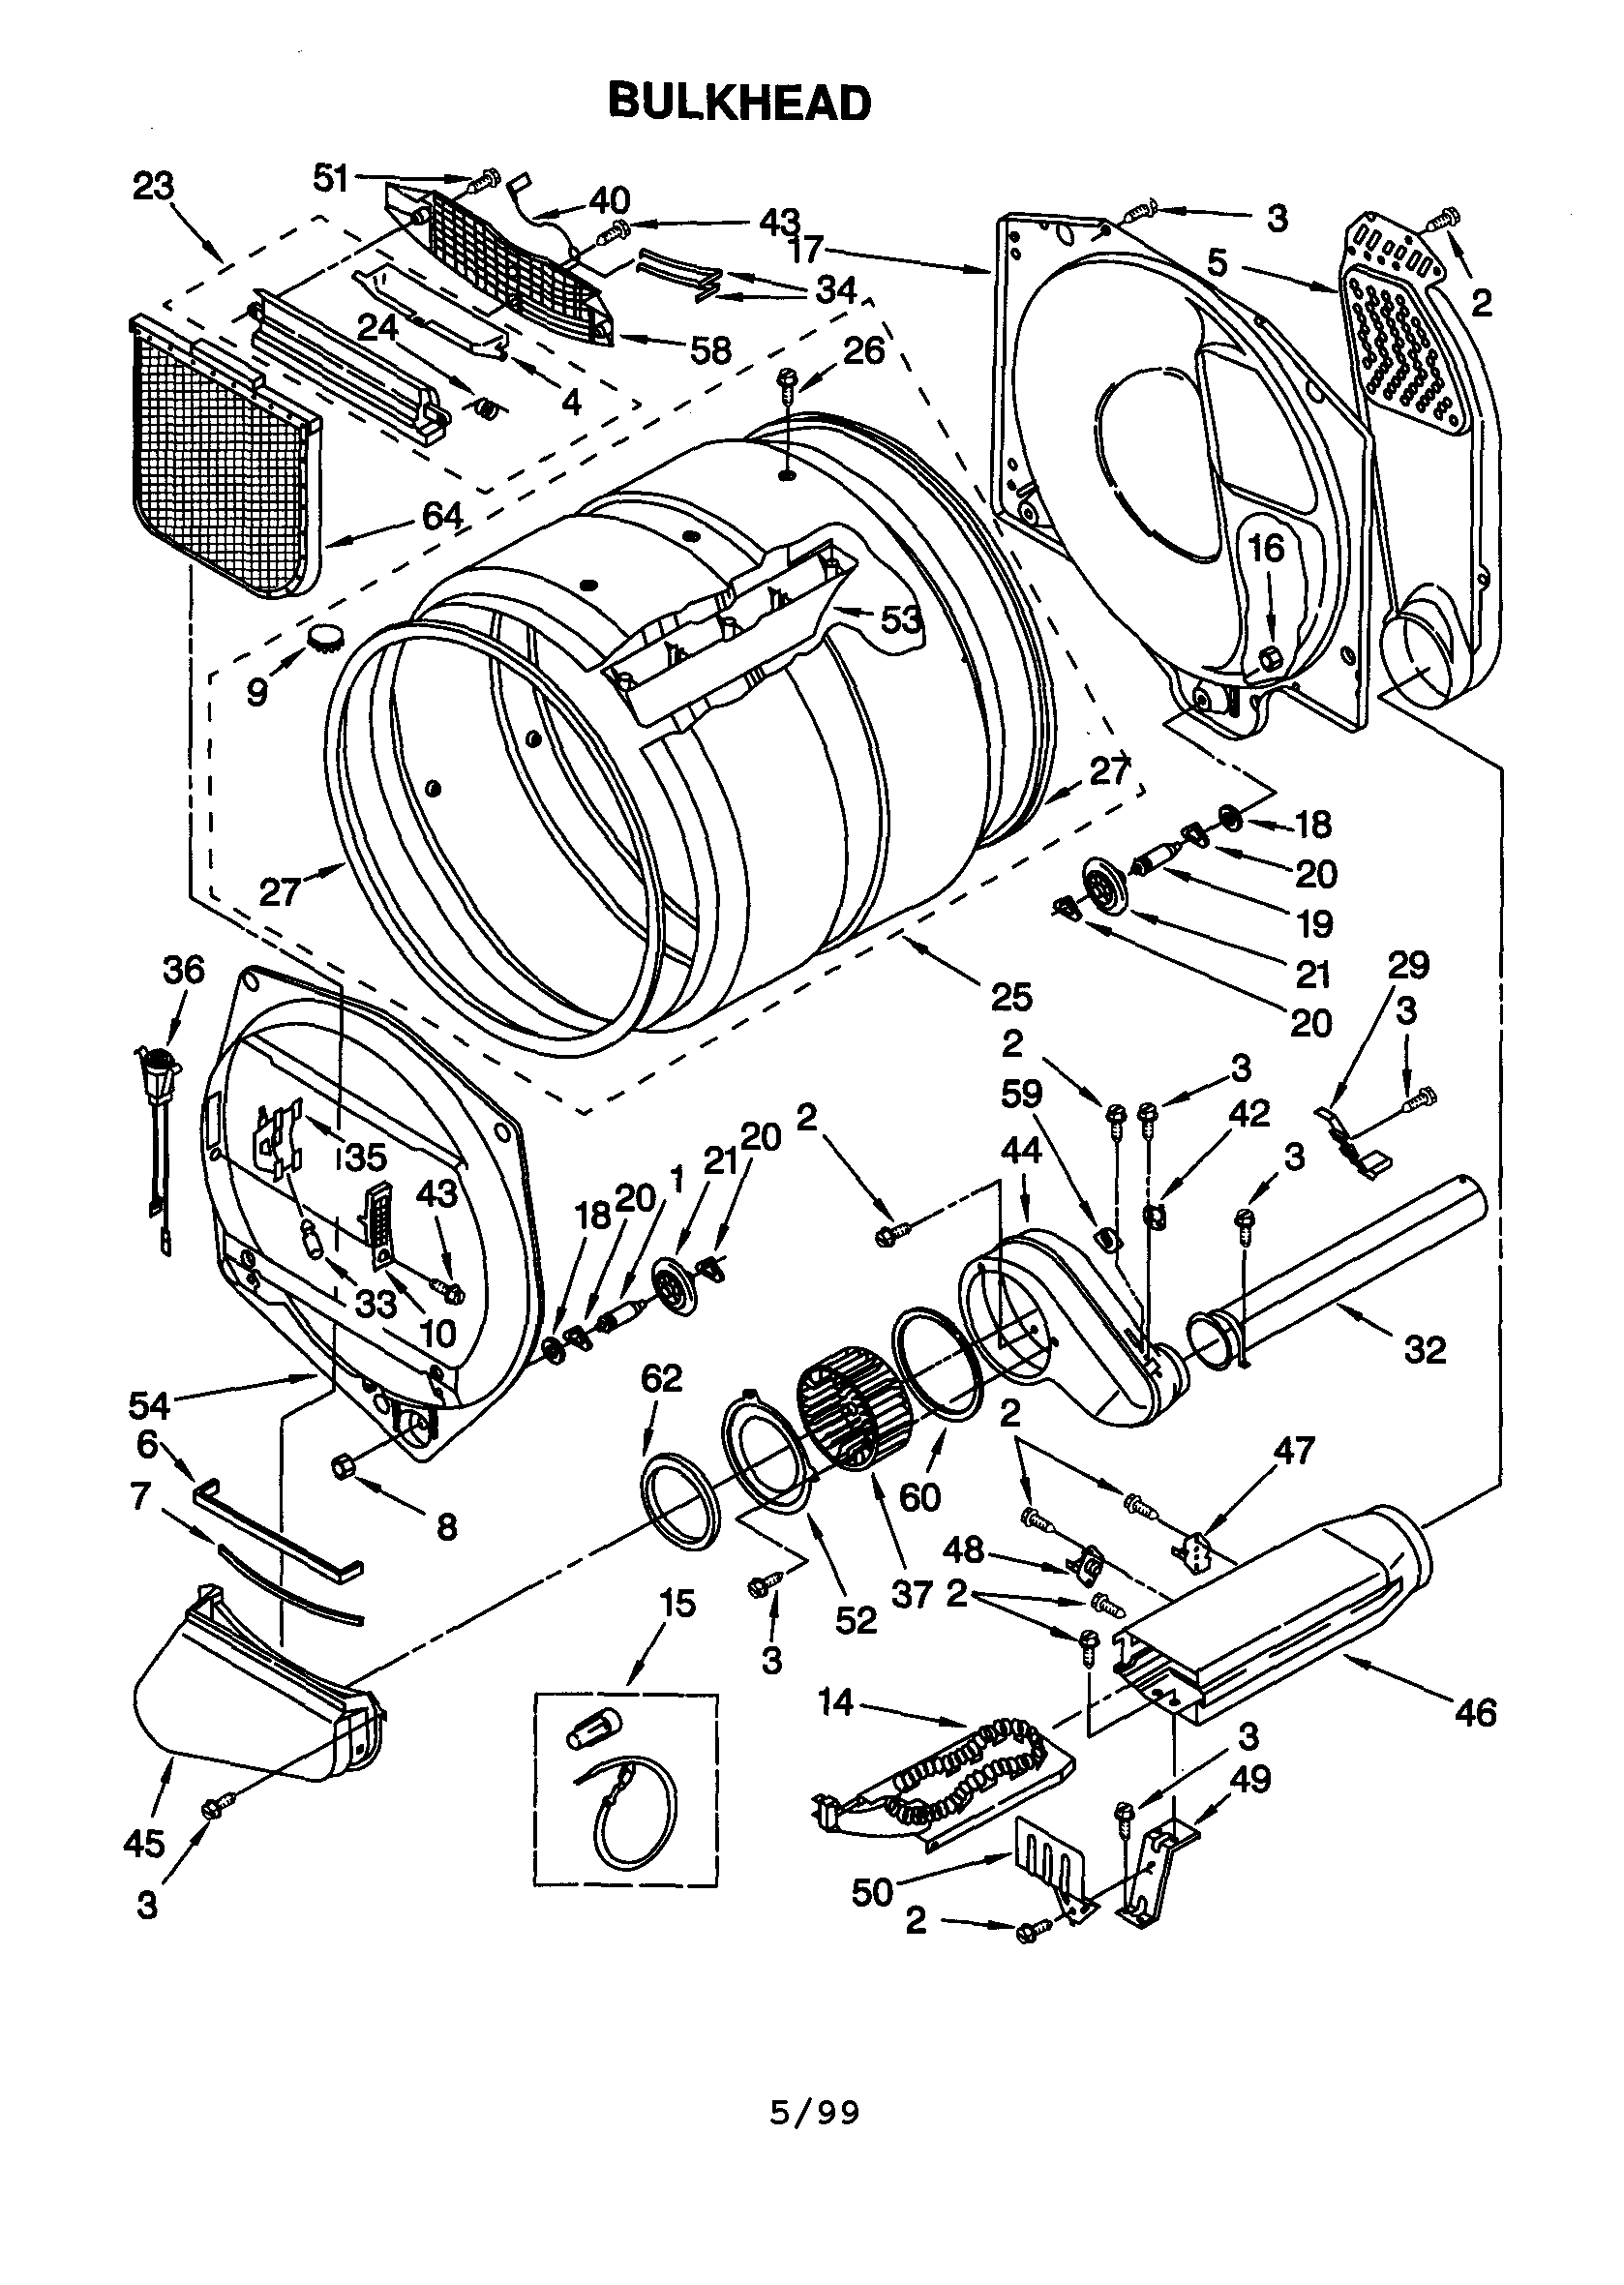 kenmore 90 series model 110 60912990 parts diagram dryer repair kenmore front load dryer diagram best collection electrical wiring [ 1678 x 2361 Pixel ]